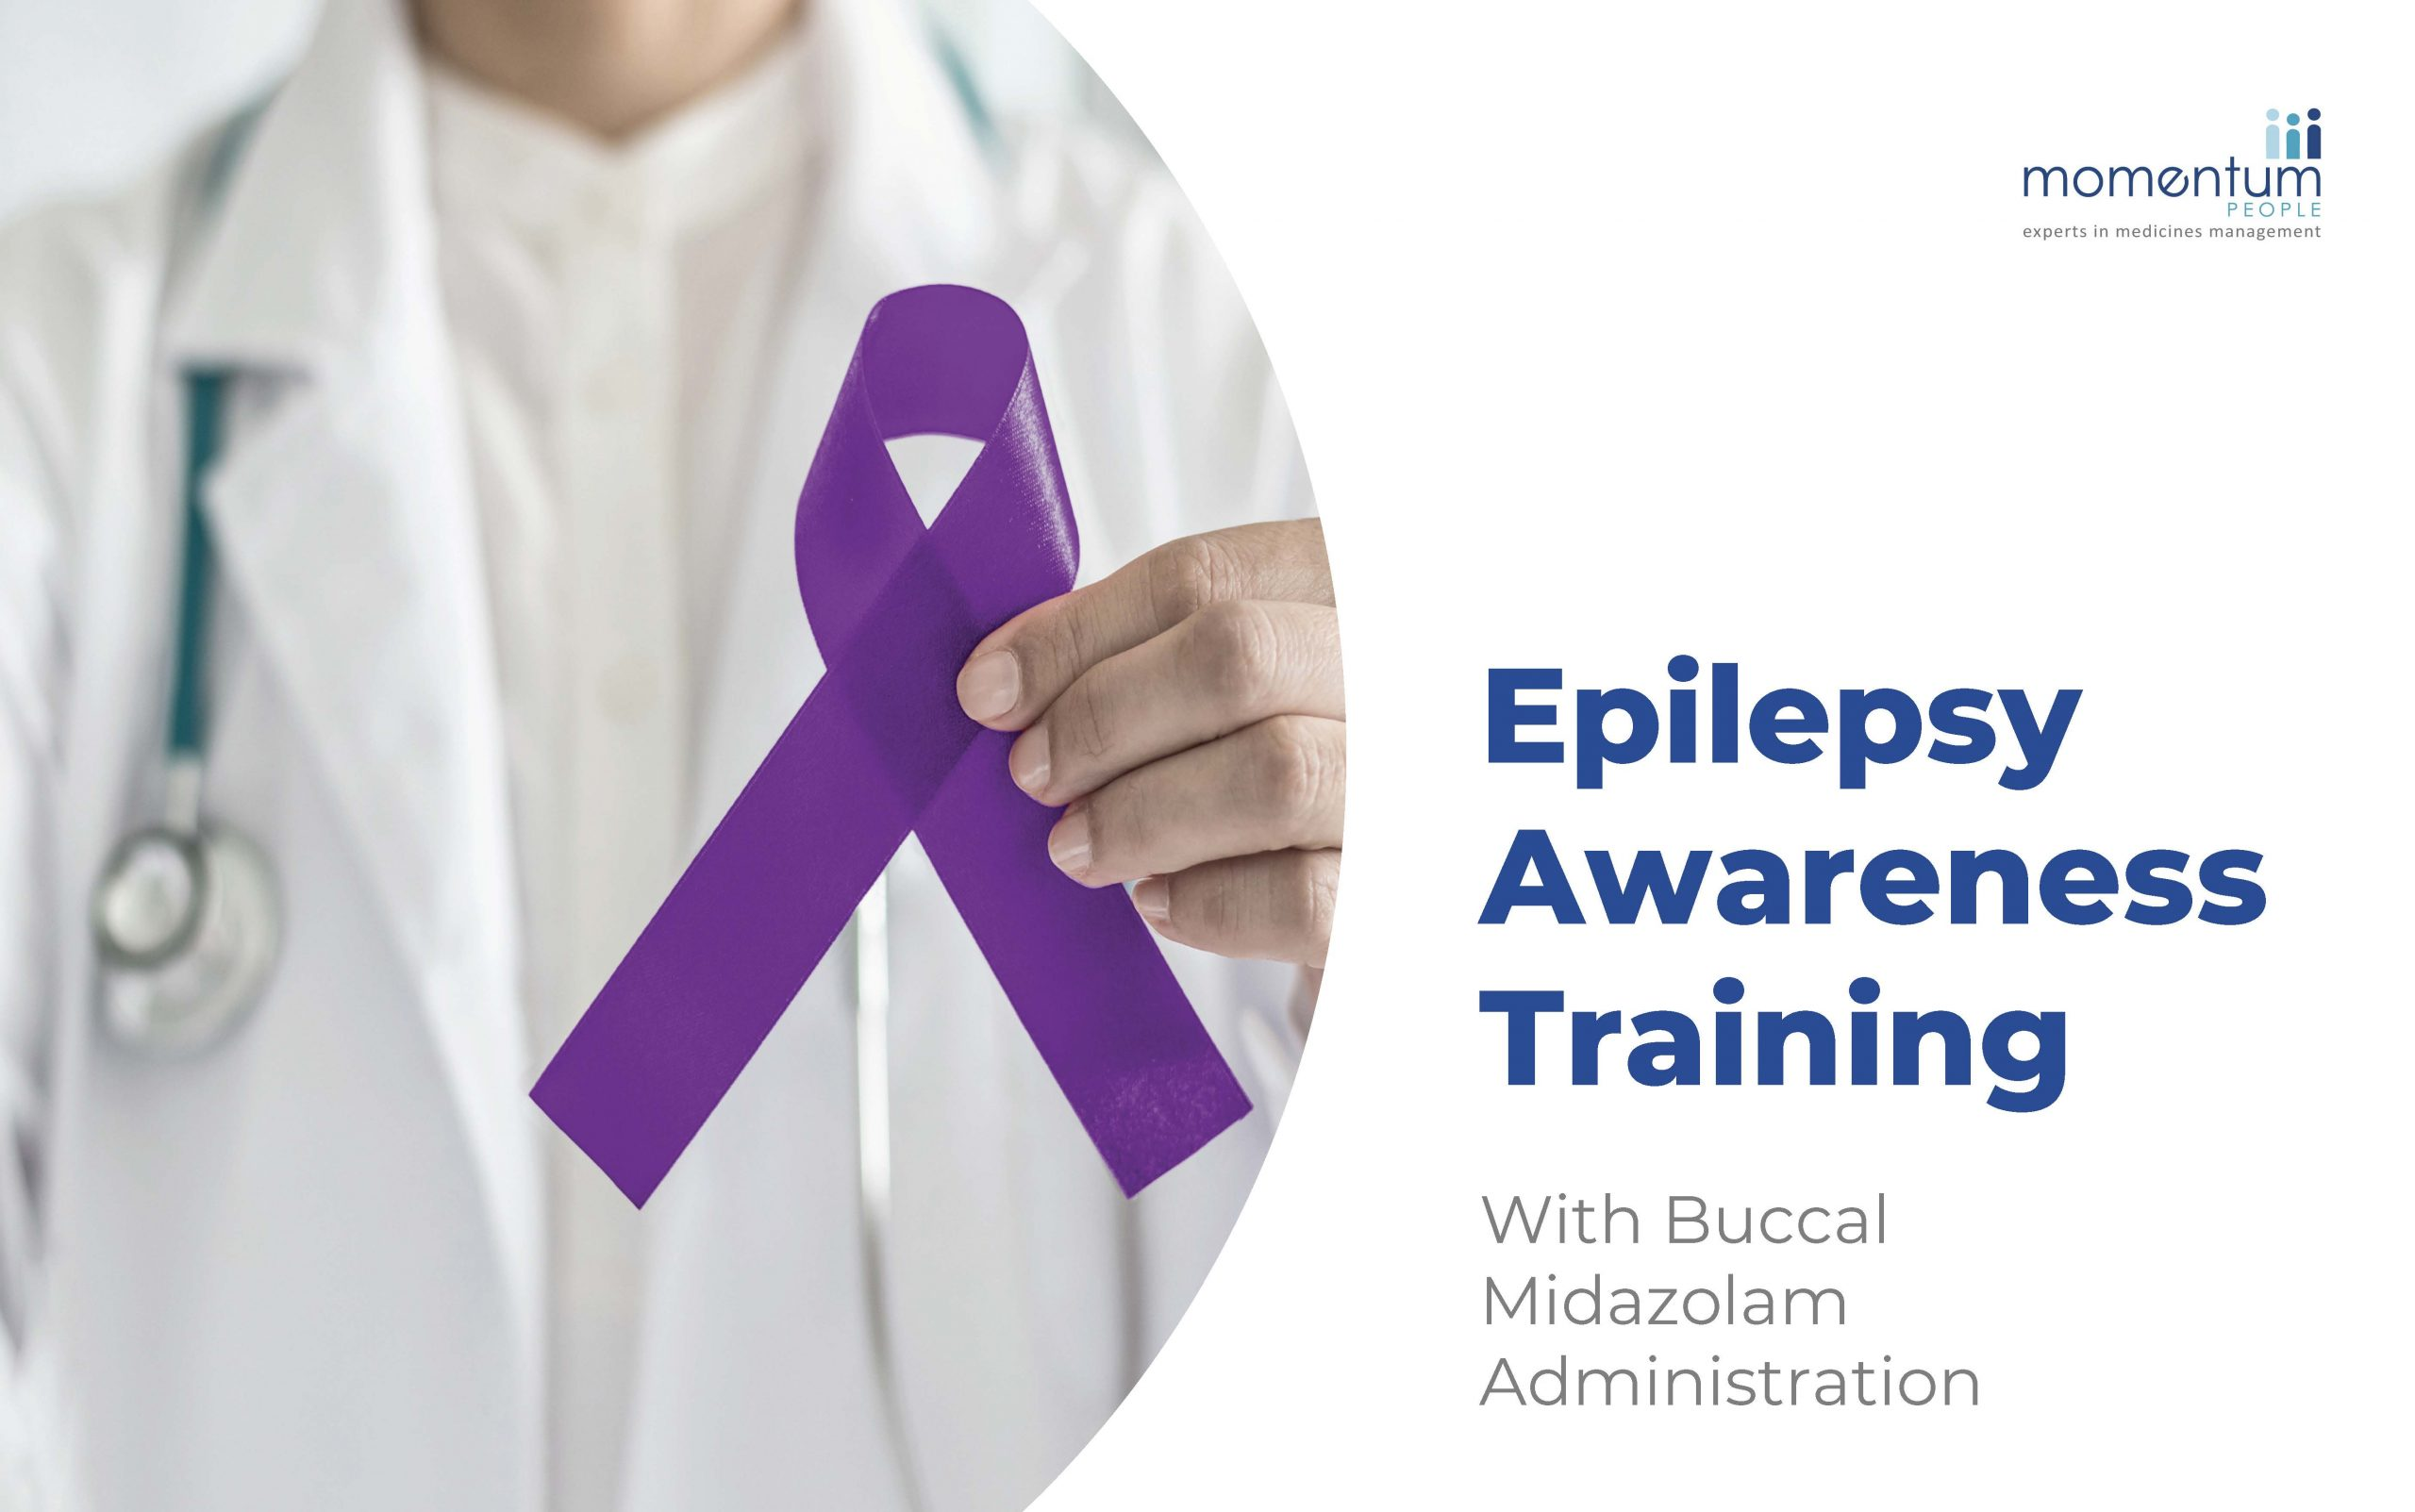 A sample slide from the Epilepsy Awareness training course run by Momentum People